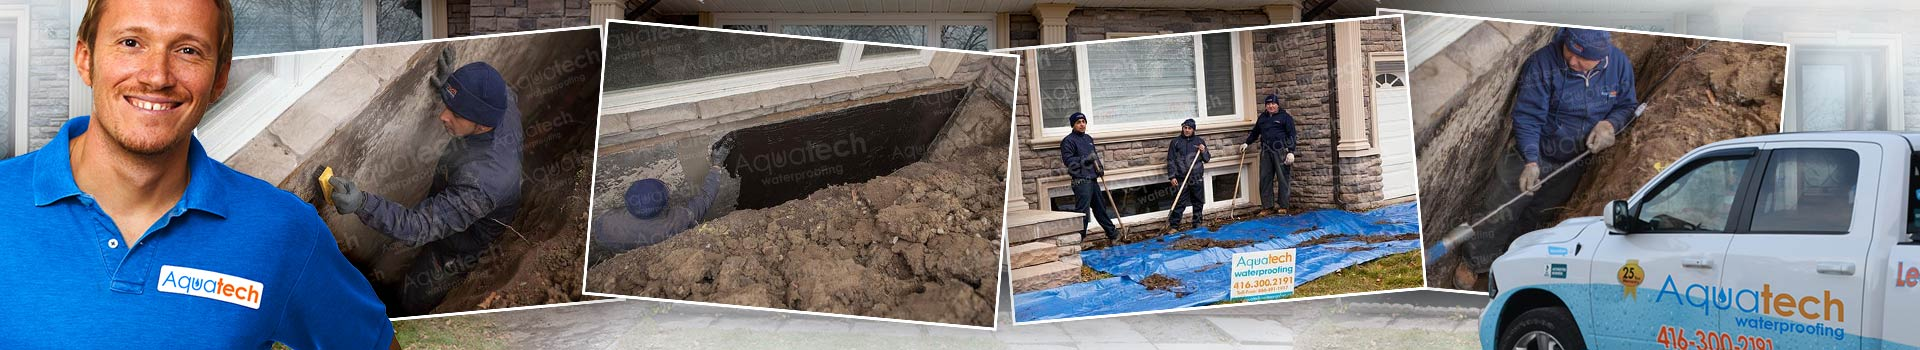 aquatech-basement-waterproofing-exterior-waterproofing